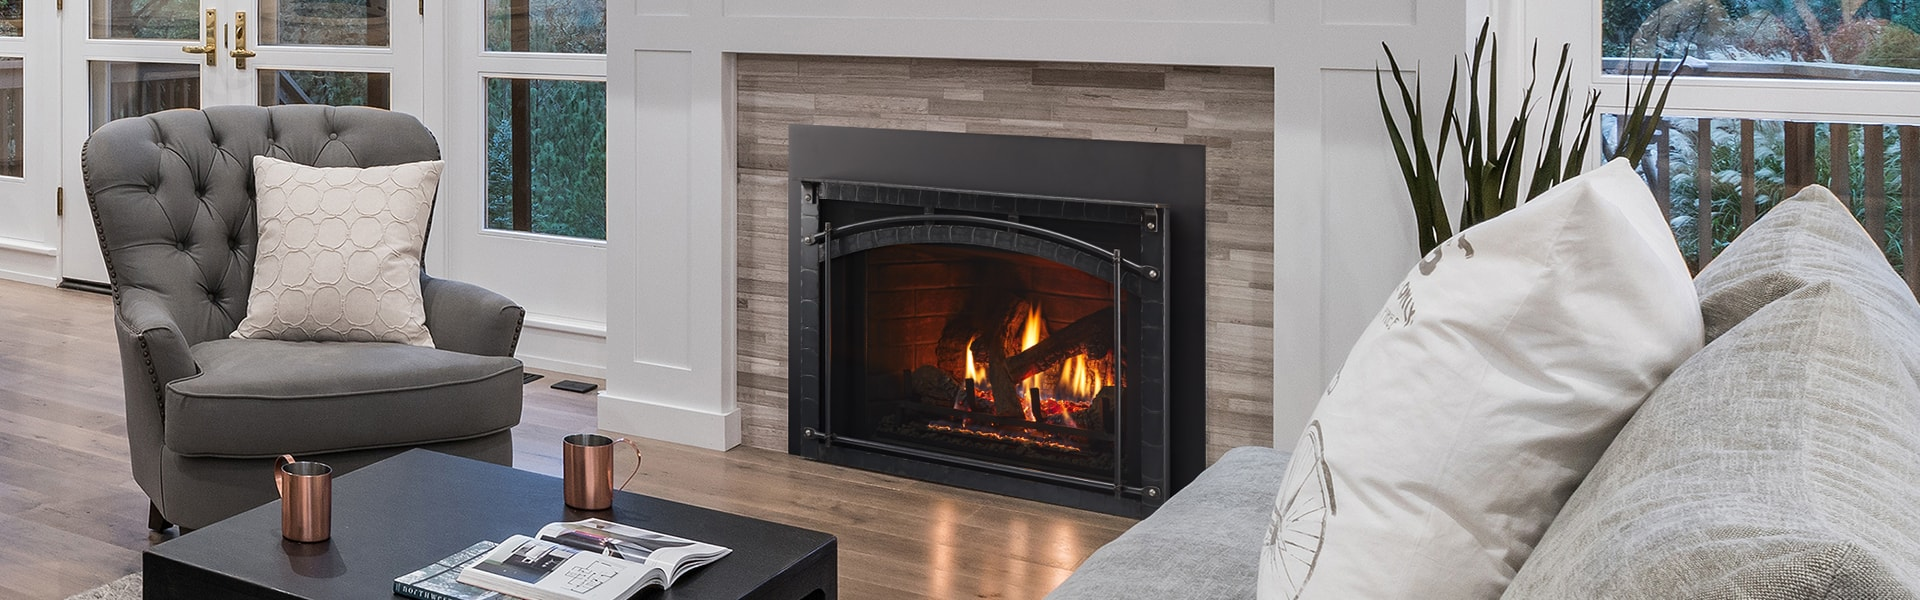 <p>ESCAPE - 30 FireBrick Insert with Chateau Forged Front</p>